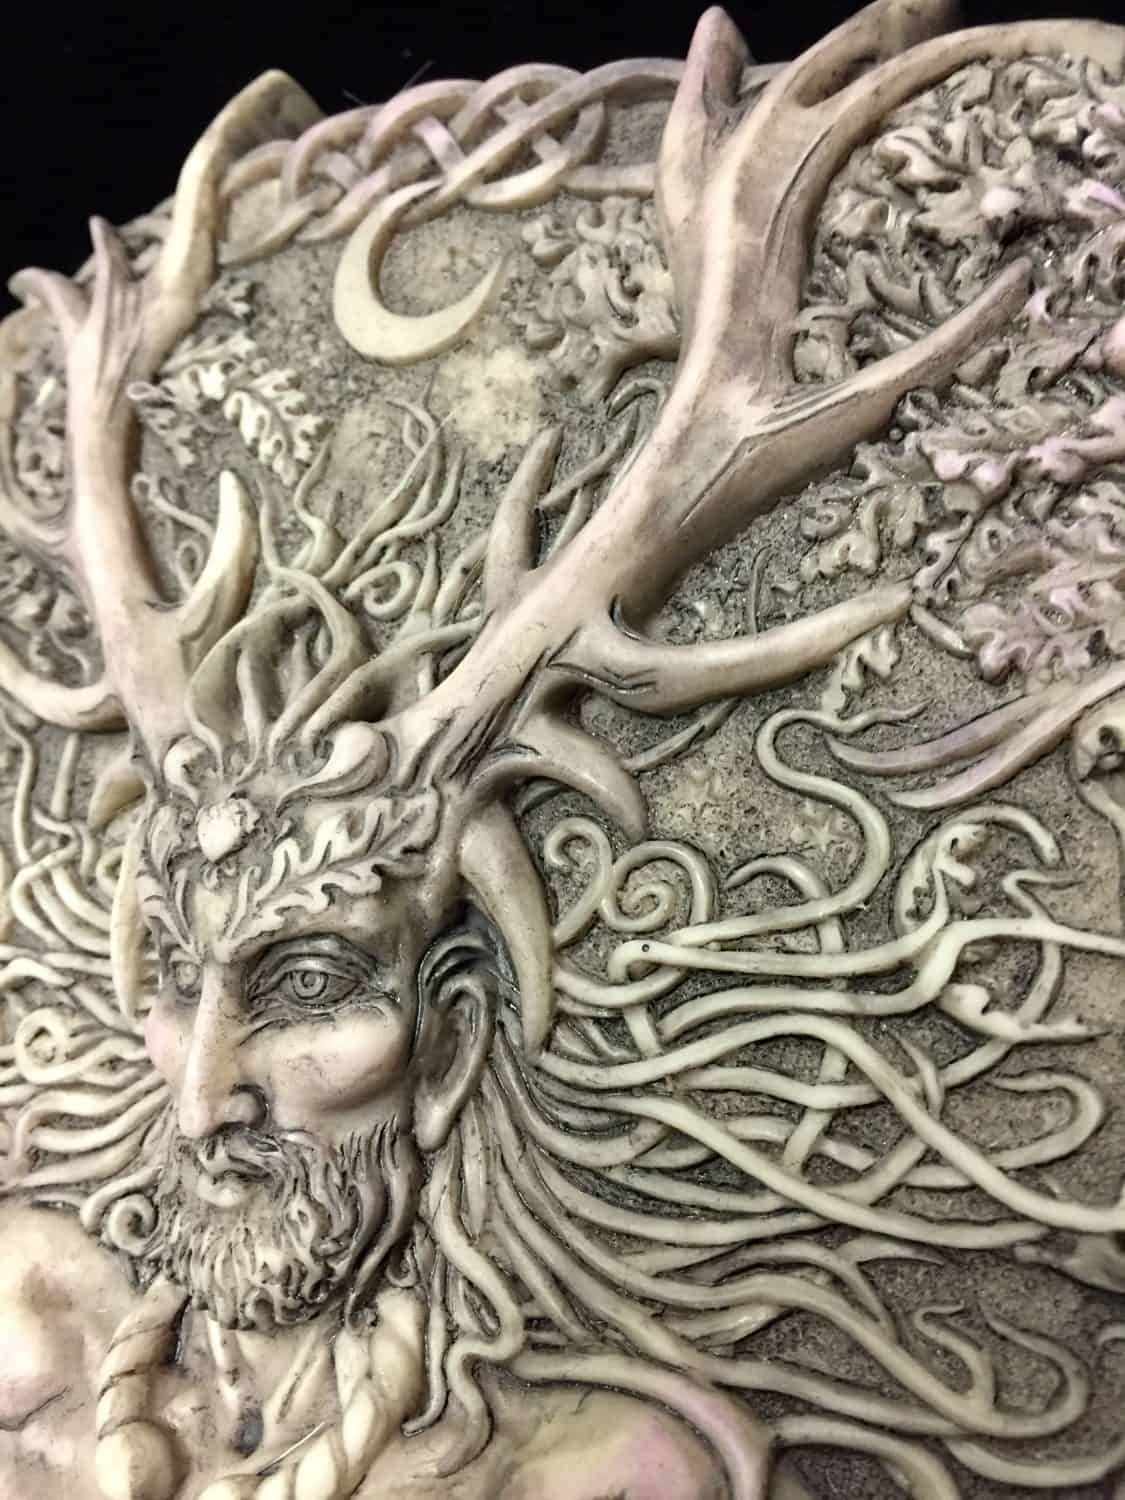 Horned Celtic God Cernunnos Wall Plaque Stone Finish by Maxine Miller ©celticjackalope.com